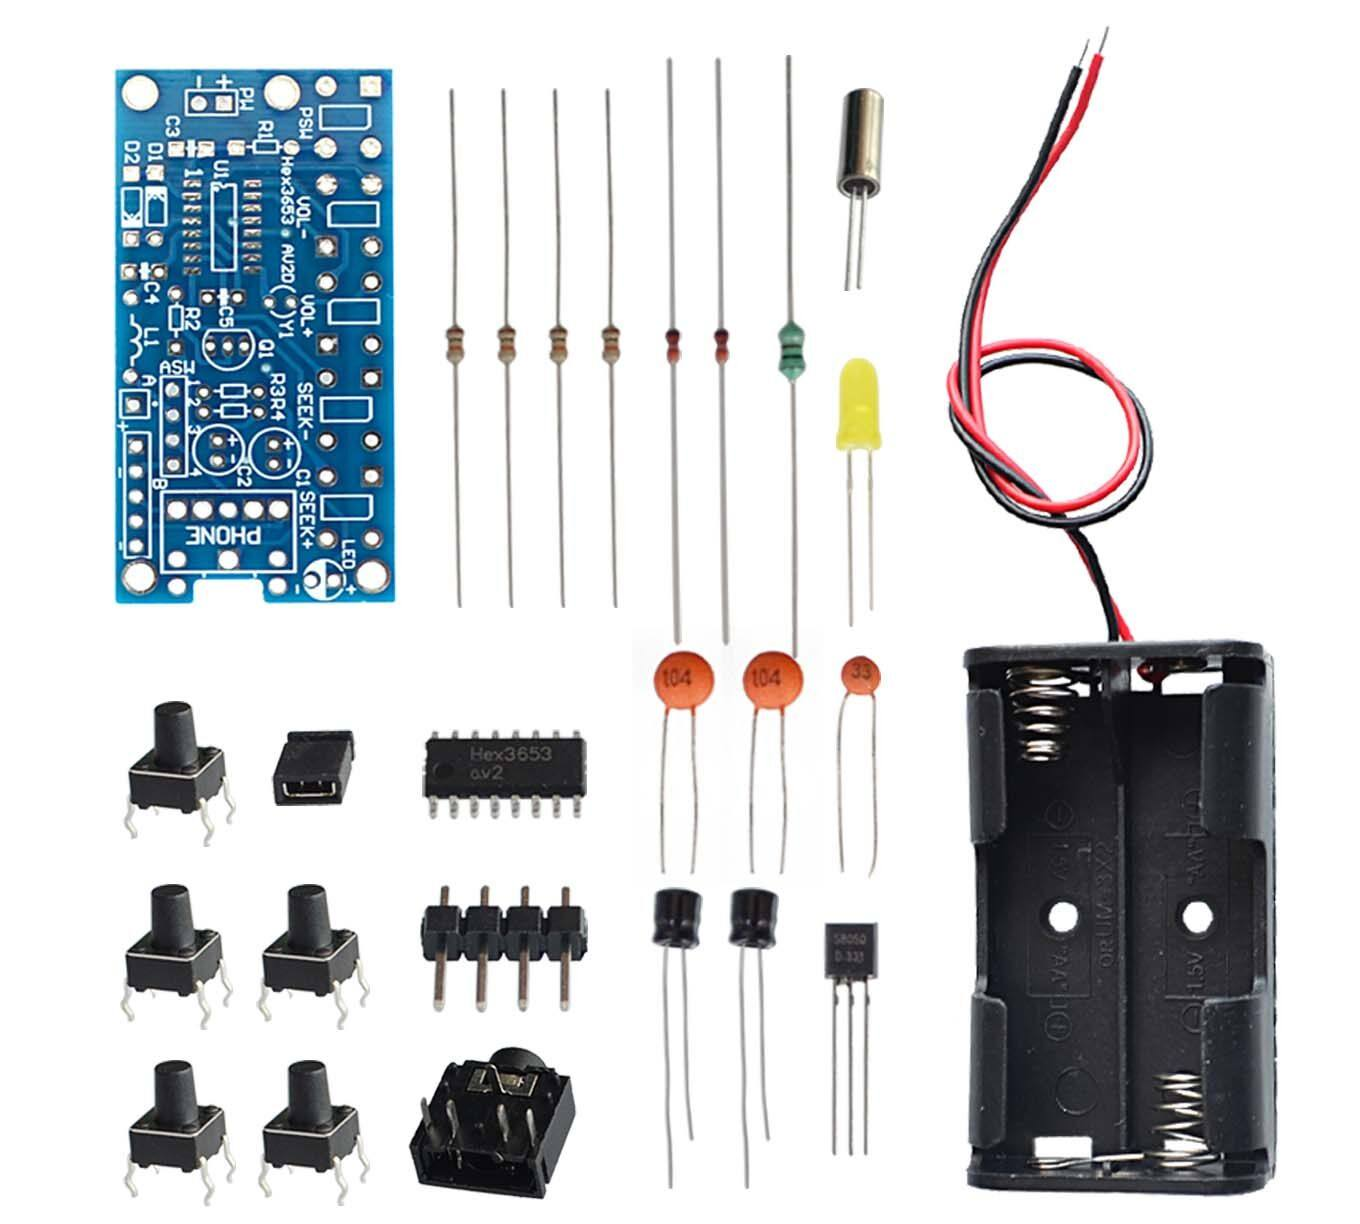 Online Shop Cnikesin Hx2031 3208 Fm Micro Chip Radio How To Build Electronic Circuit Wireless Stereo Receiver Module Pcb Diy Kits 76mhz 108mhz Dc 18